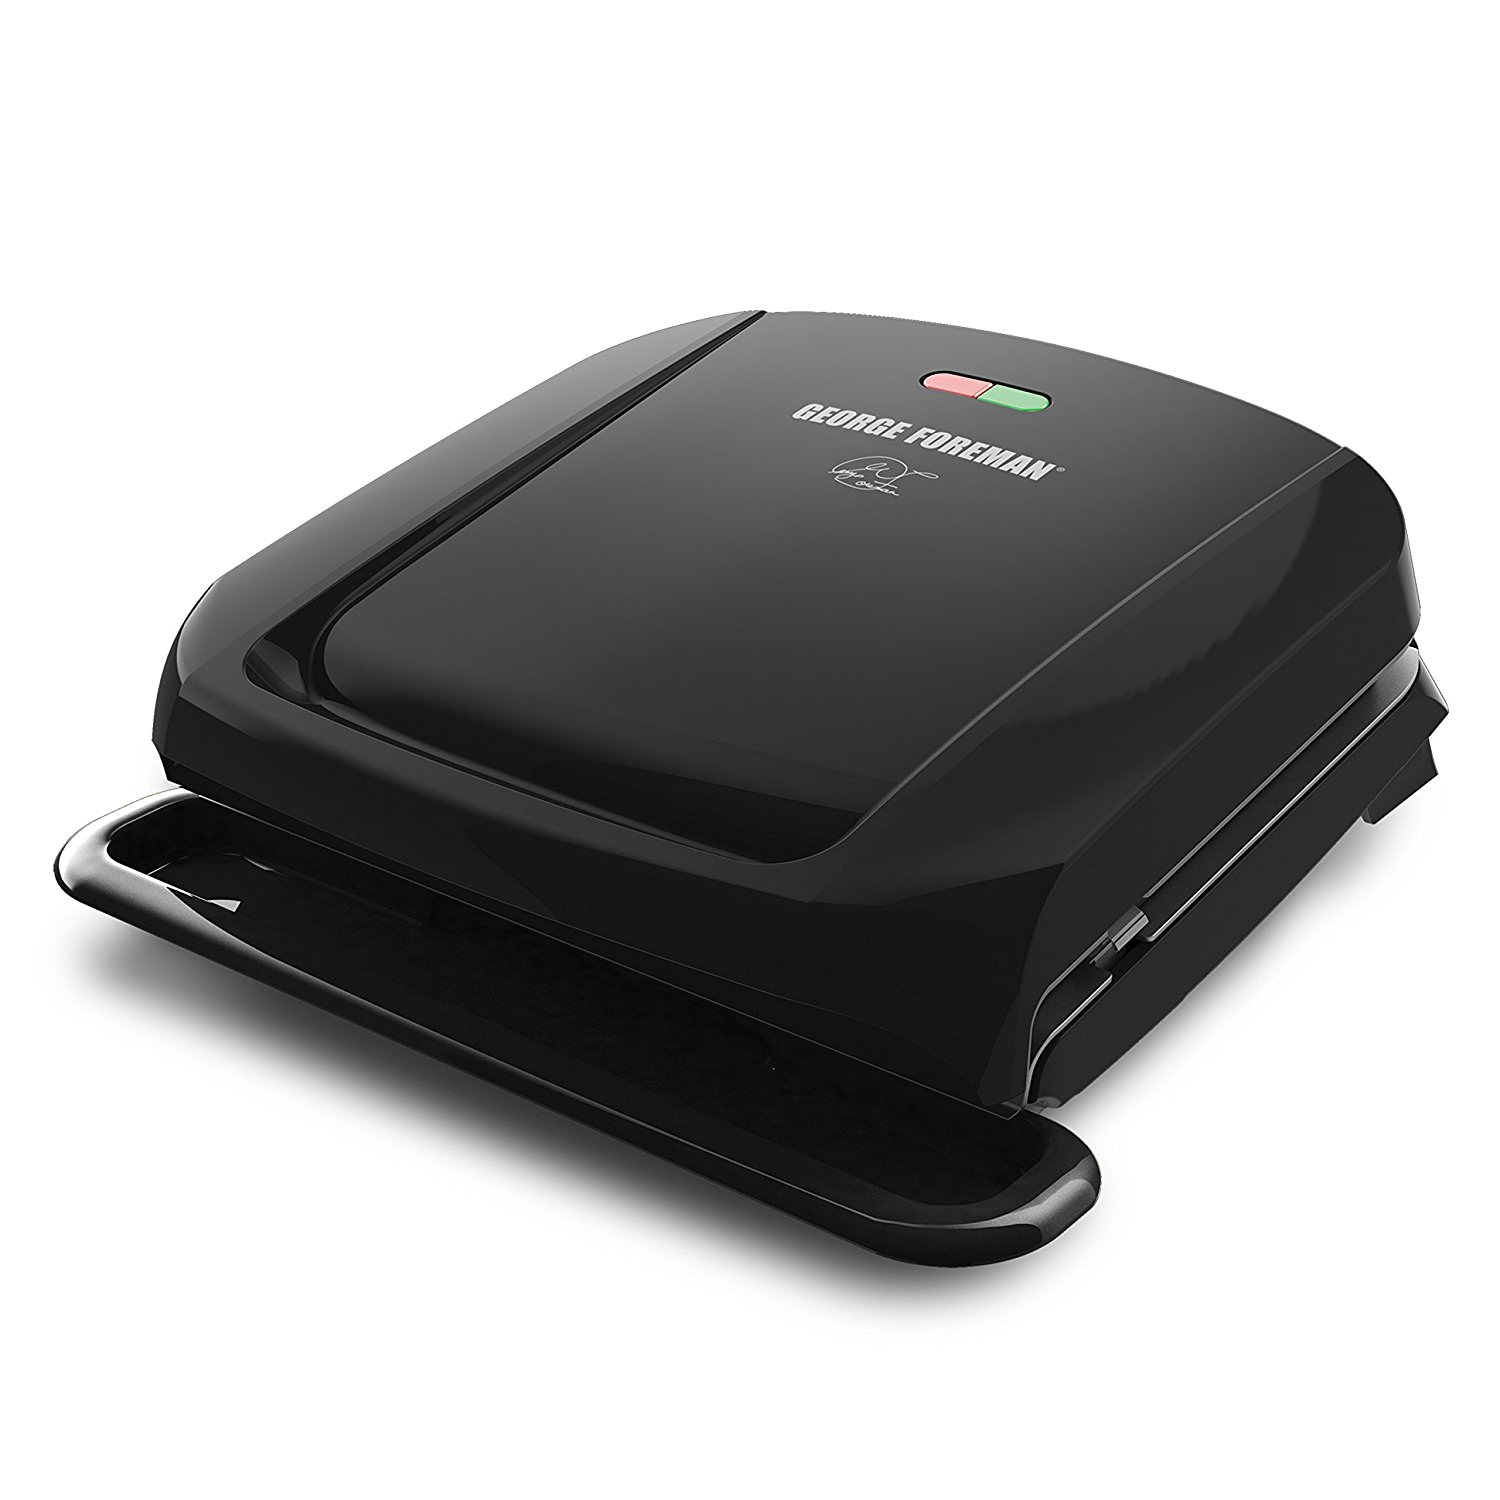 4-Serving Removable Plate & Panini Grill - Black